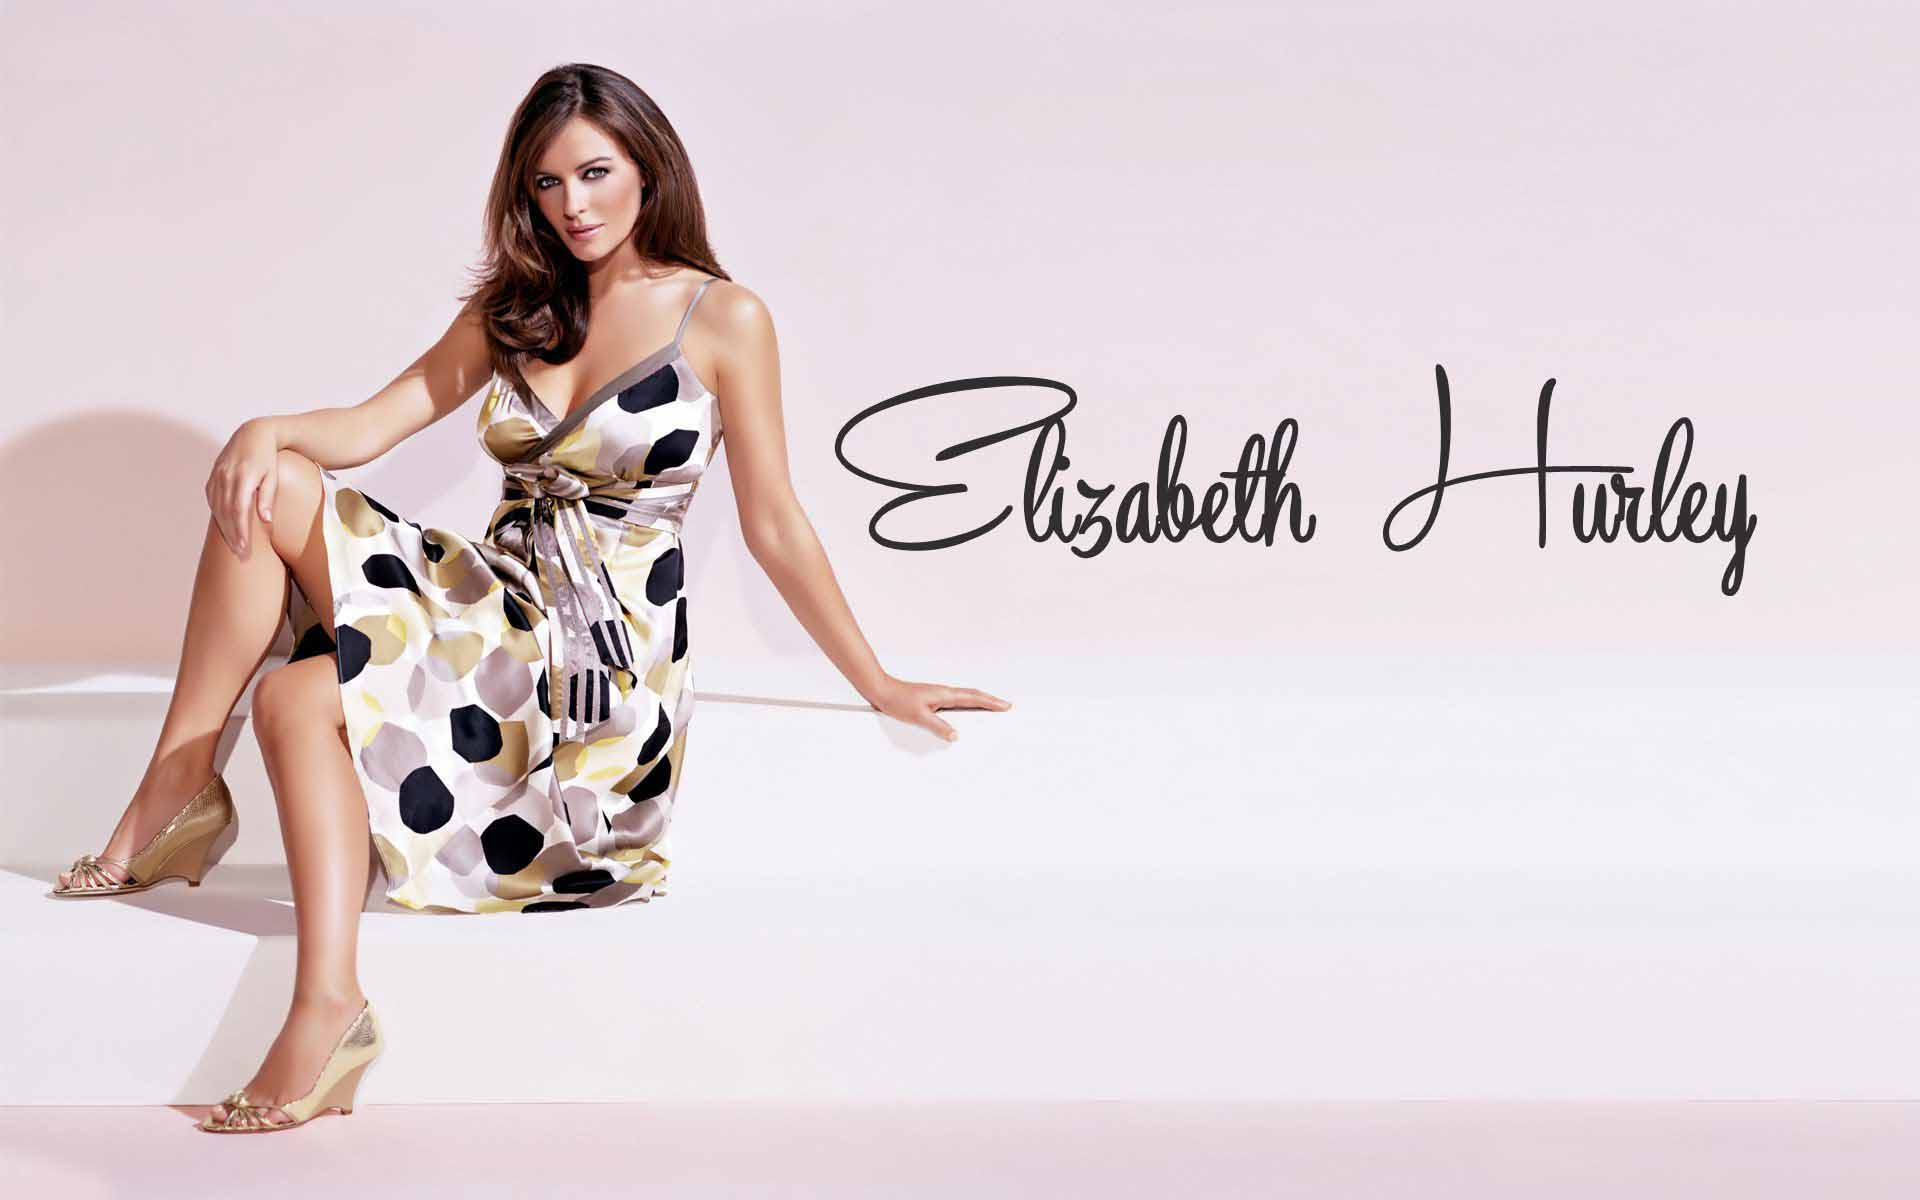 Elizabeth Hurley HD Wallpapers 1920x1200